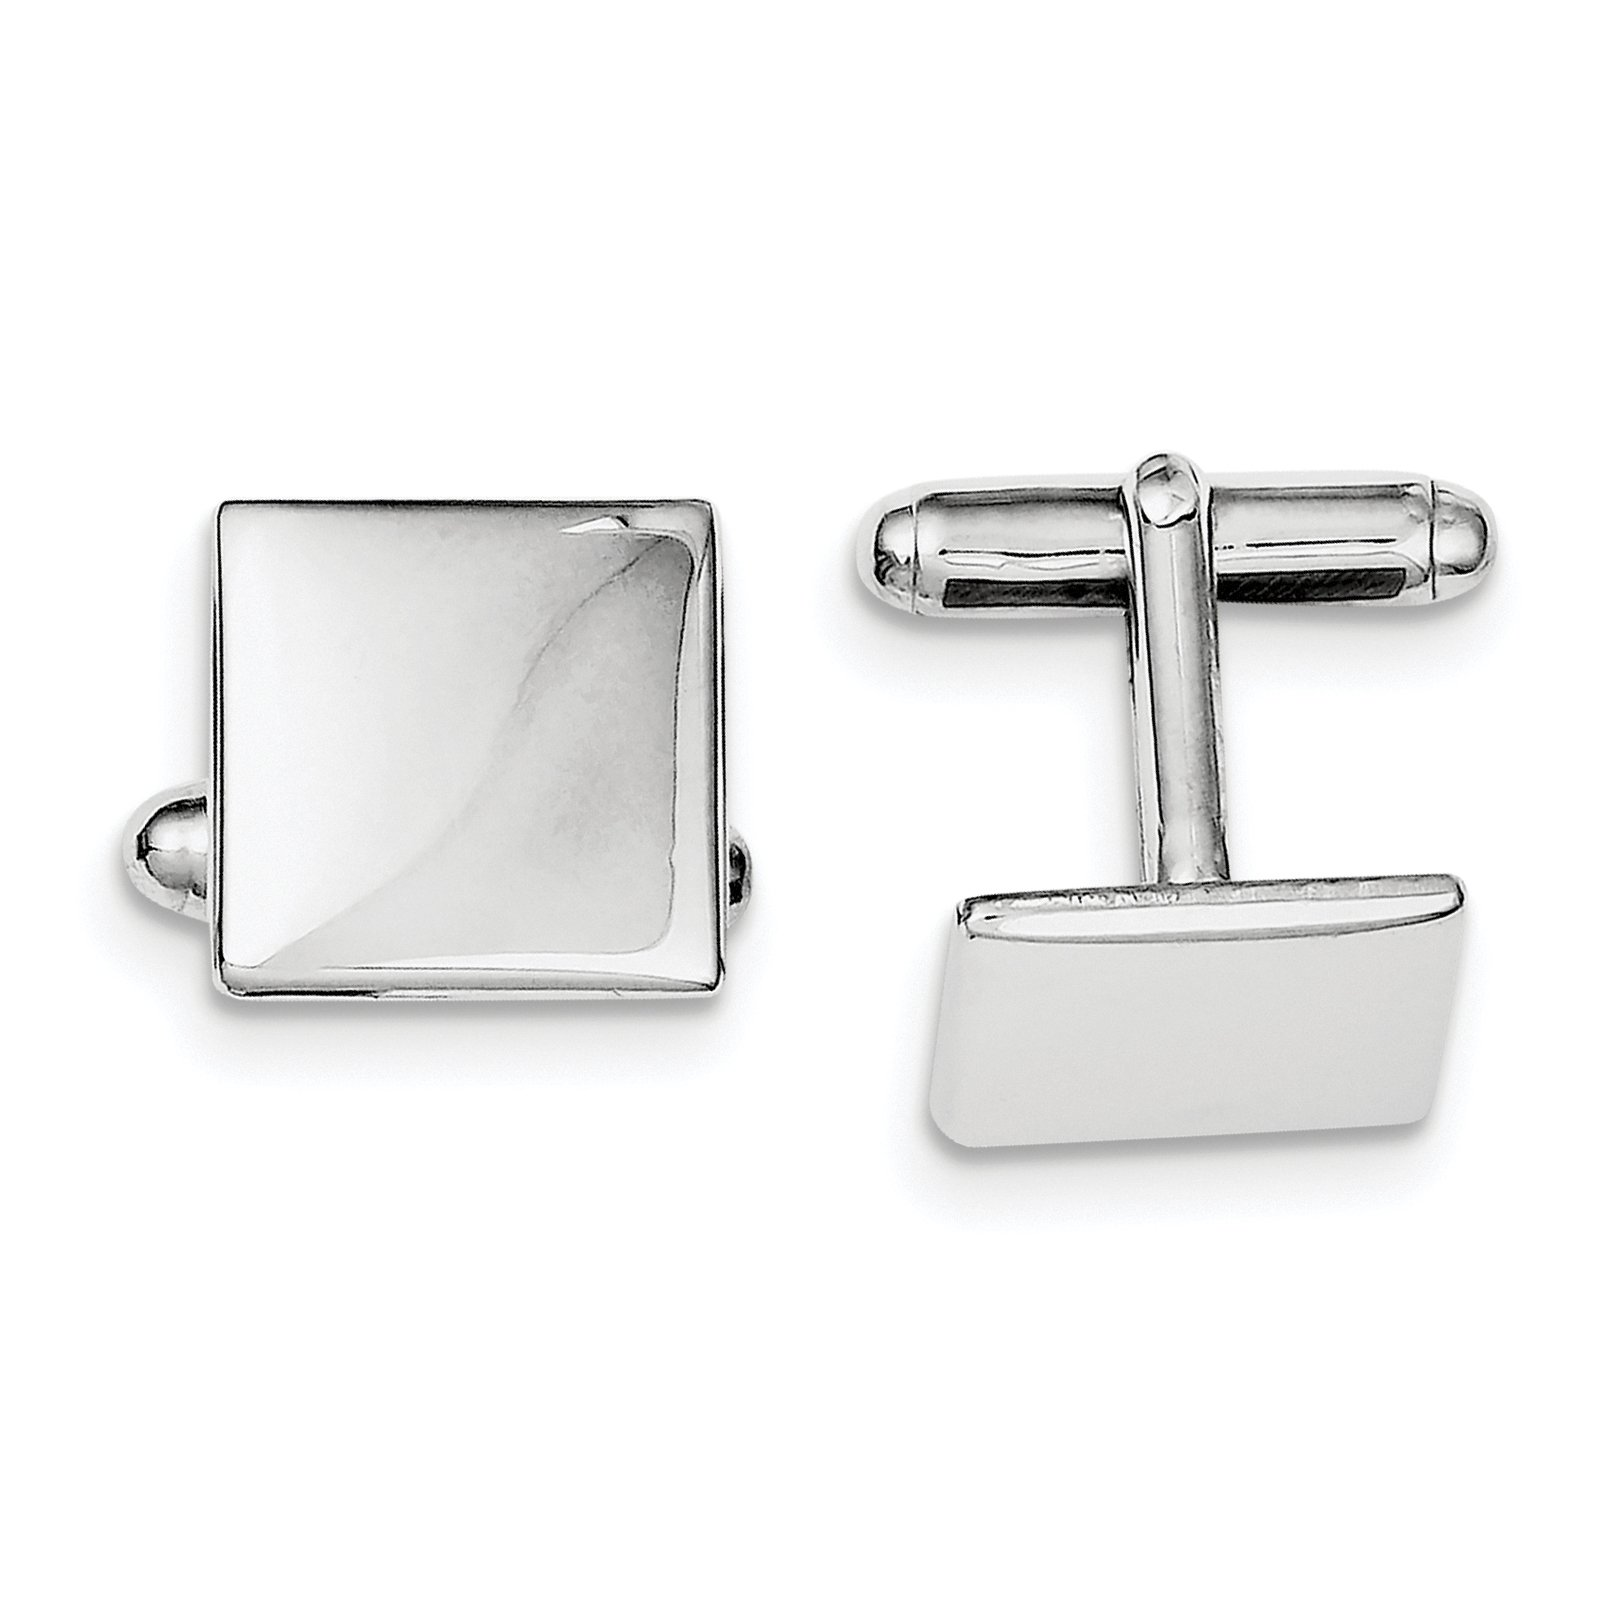 ICE CARATS 925 Sterling Silver Square Cuff Links Mens Cufflinks Man Link Fine Jewelry Dad Mens Gift Set